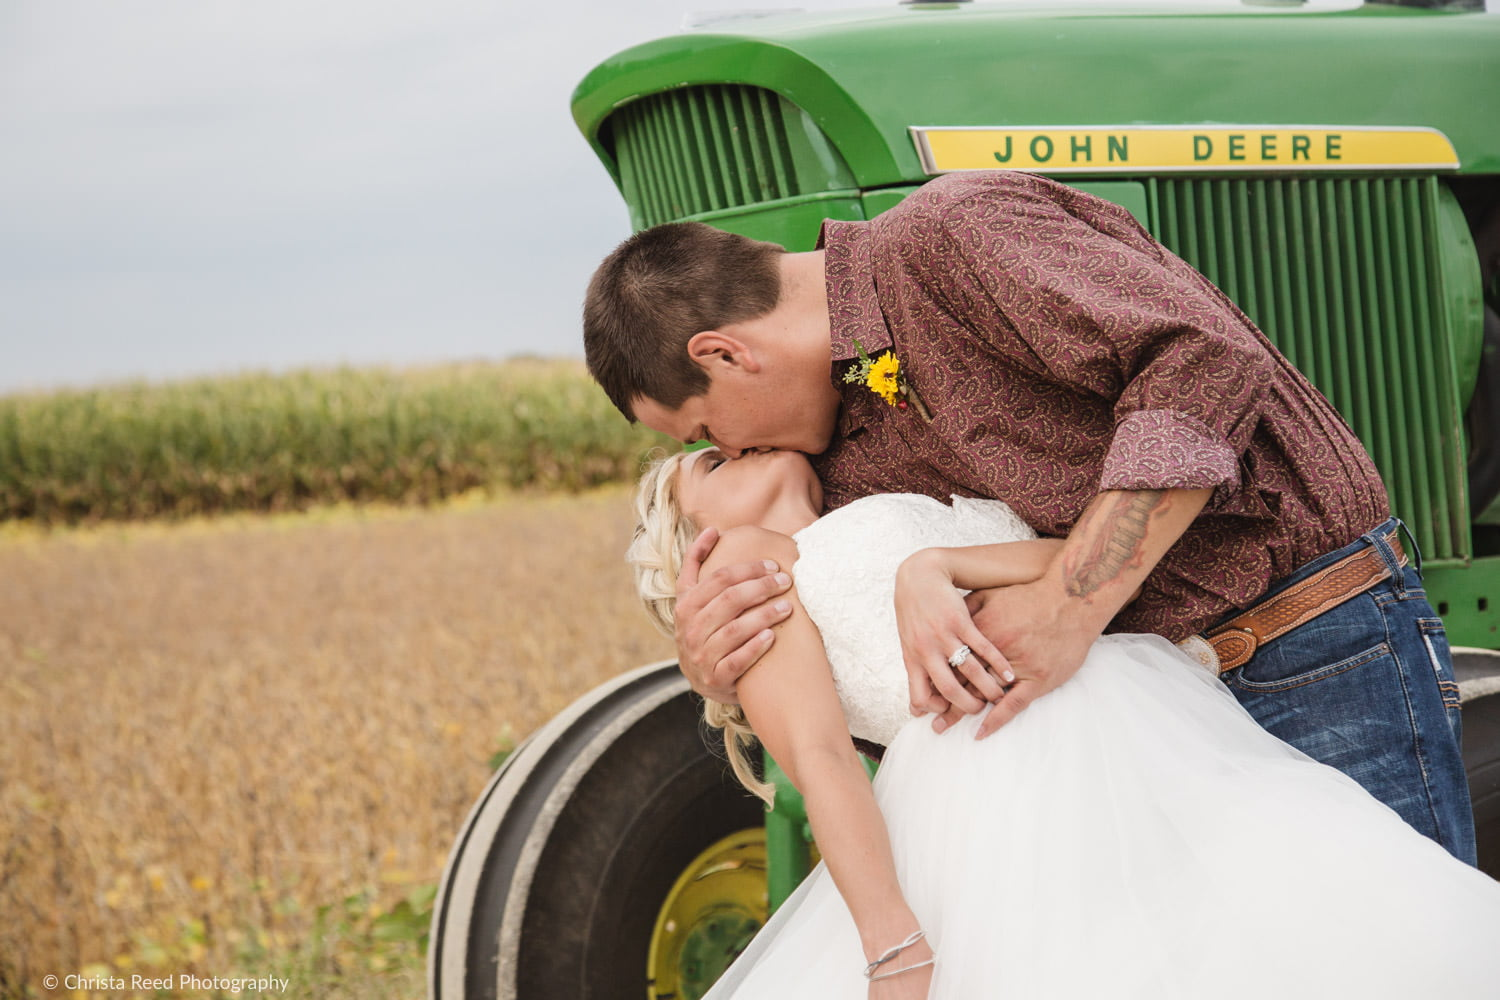 a couple kisses at their farm wedding with a john deer tractor and cornfield in the background